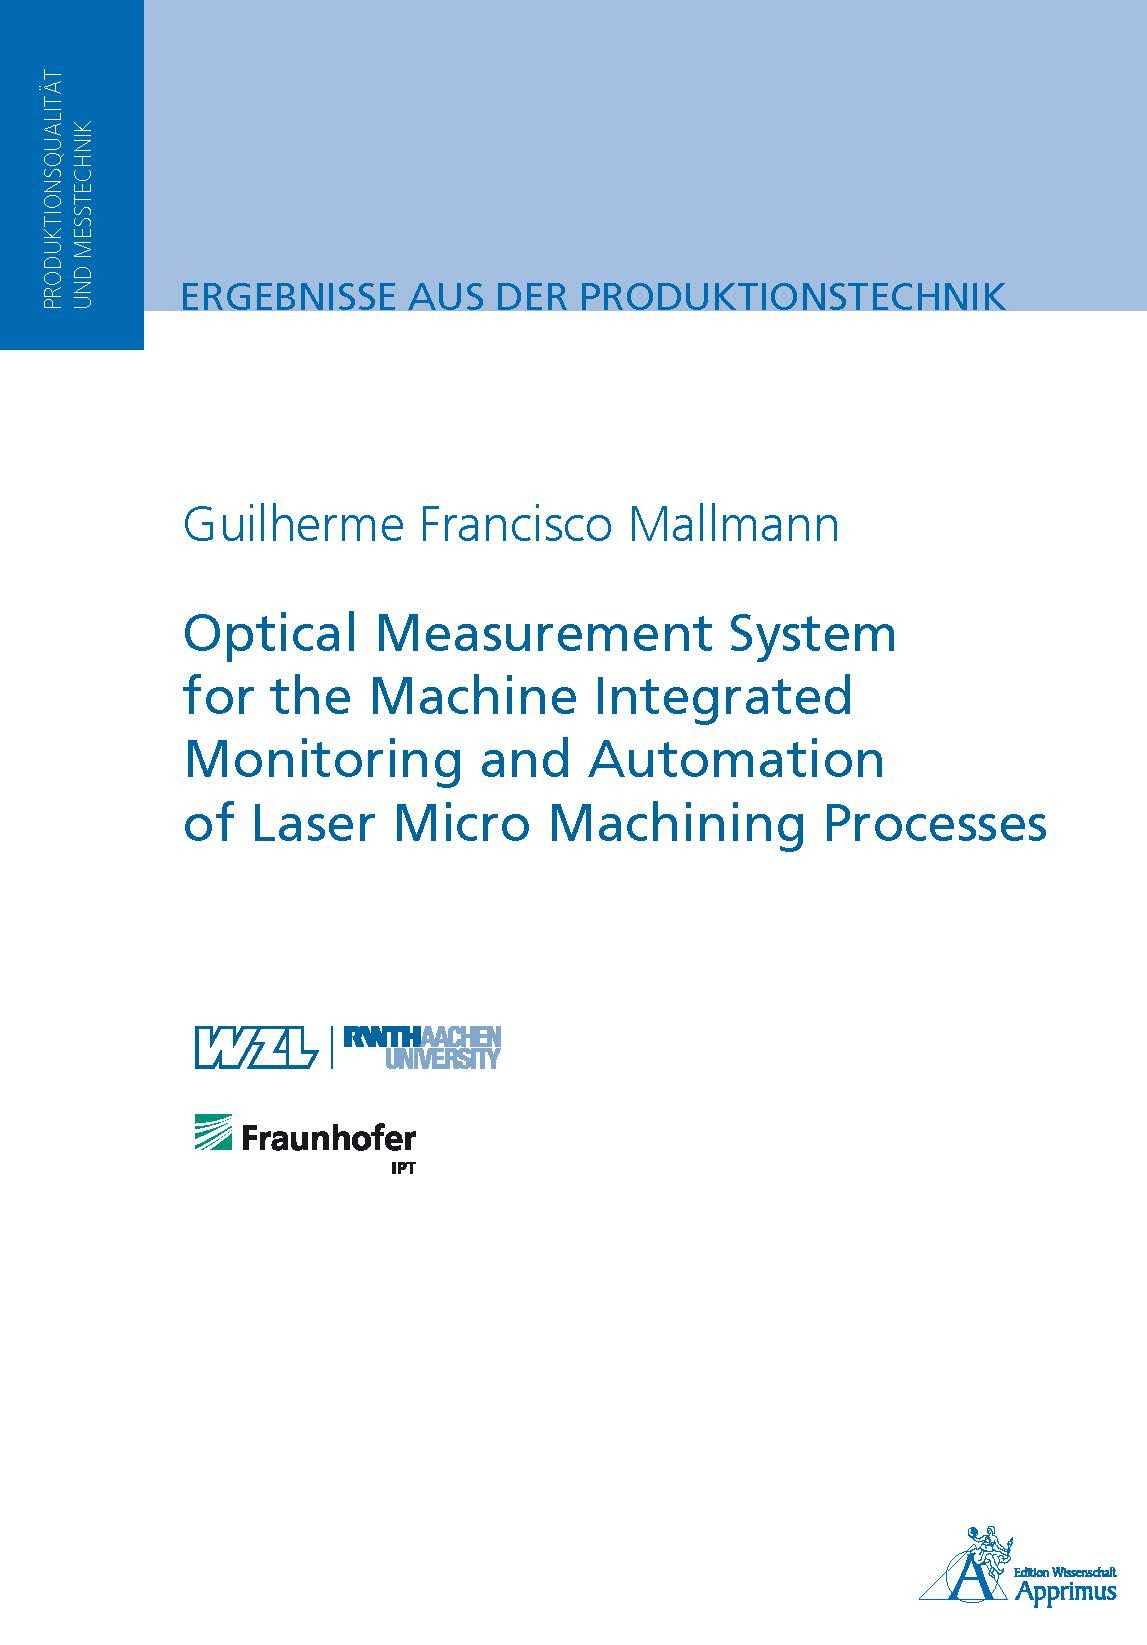 Optical Measurement System for the Machine Integrated Monitoring and Automation of Laser Micro Machining Processes